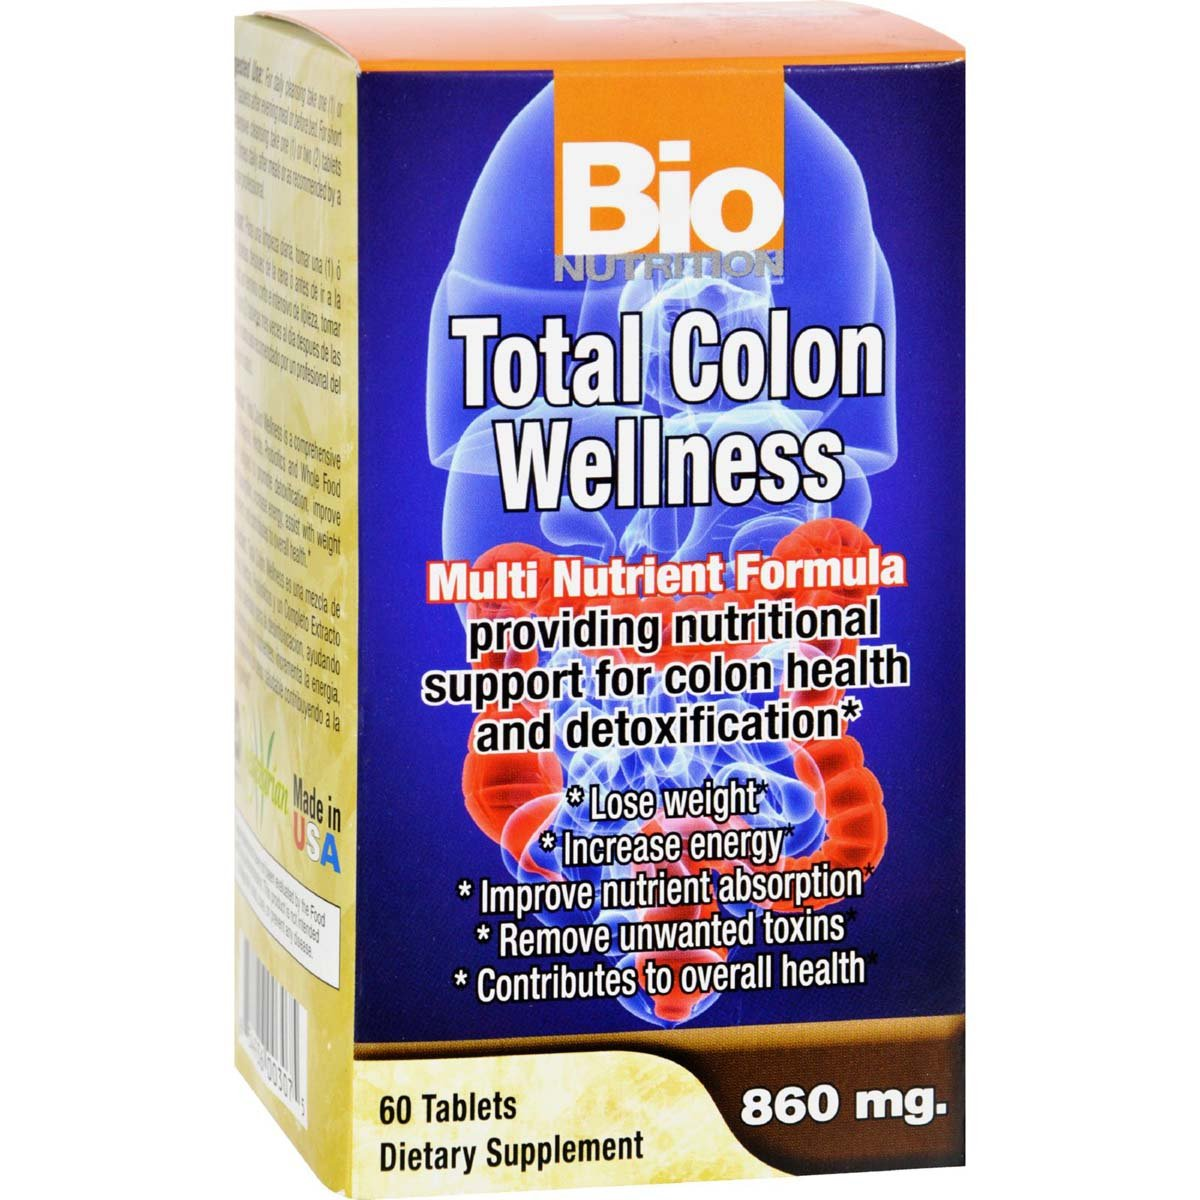 Bio Nutrition Total Colon Wellness Tabs, 60 Count